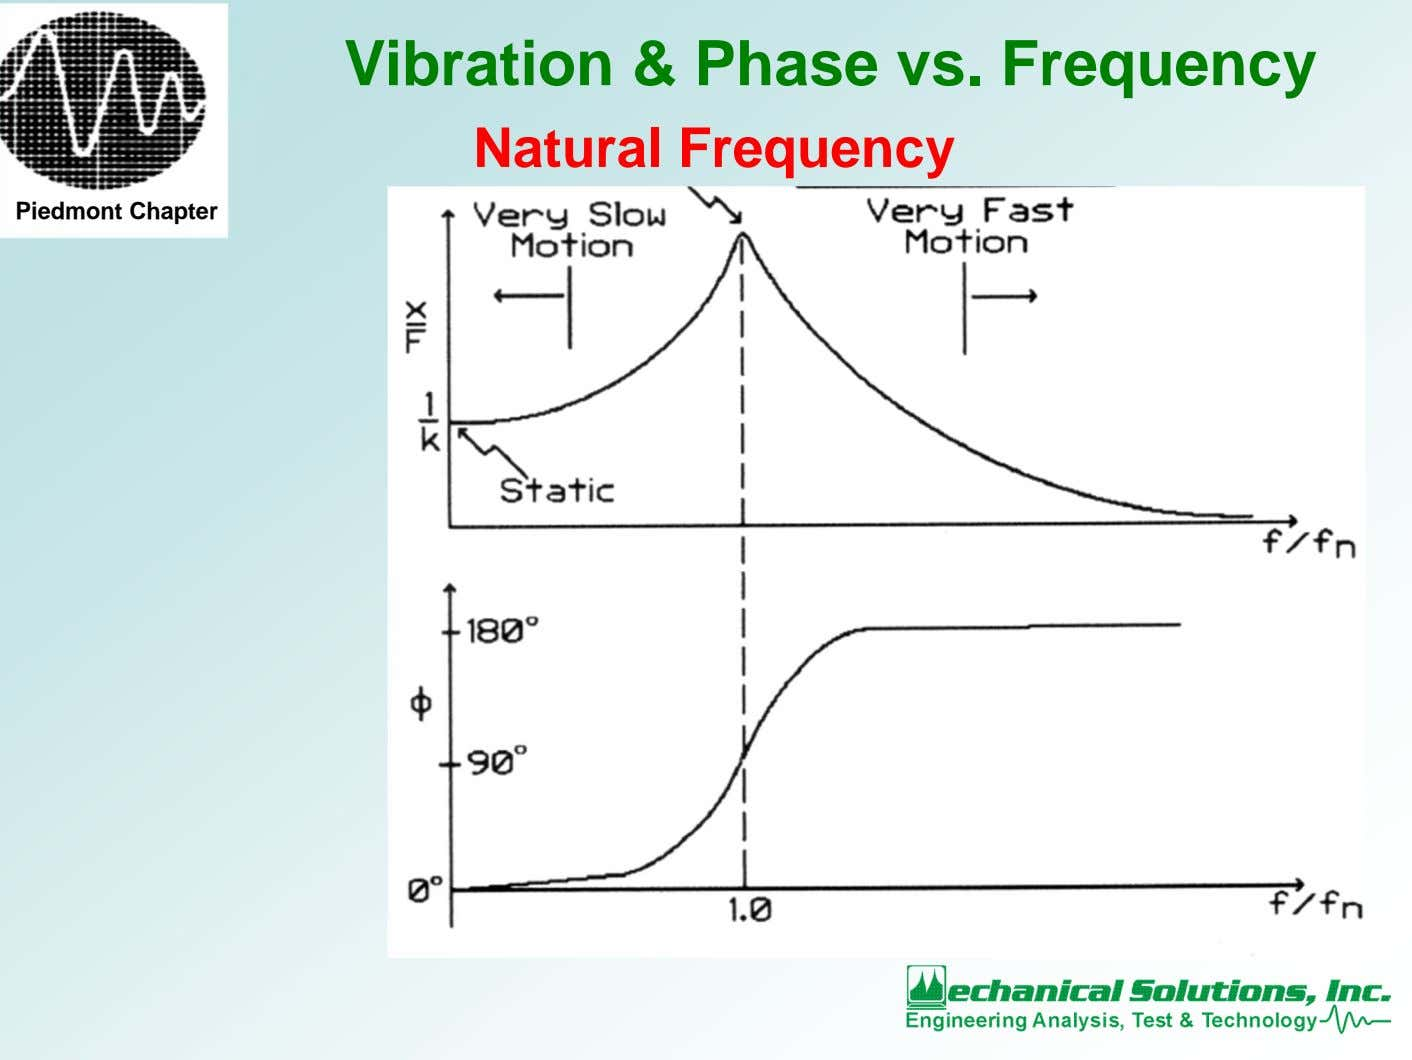 Vibration & Phase vs. Frequency Natural Frequency Piedmont Chapter